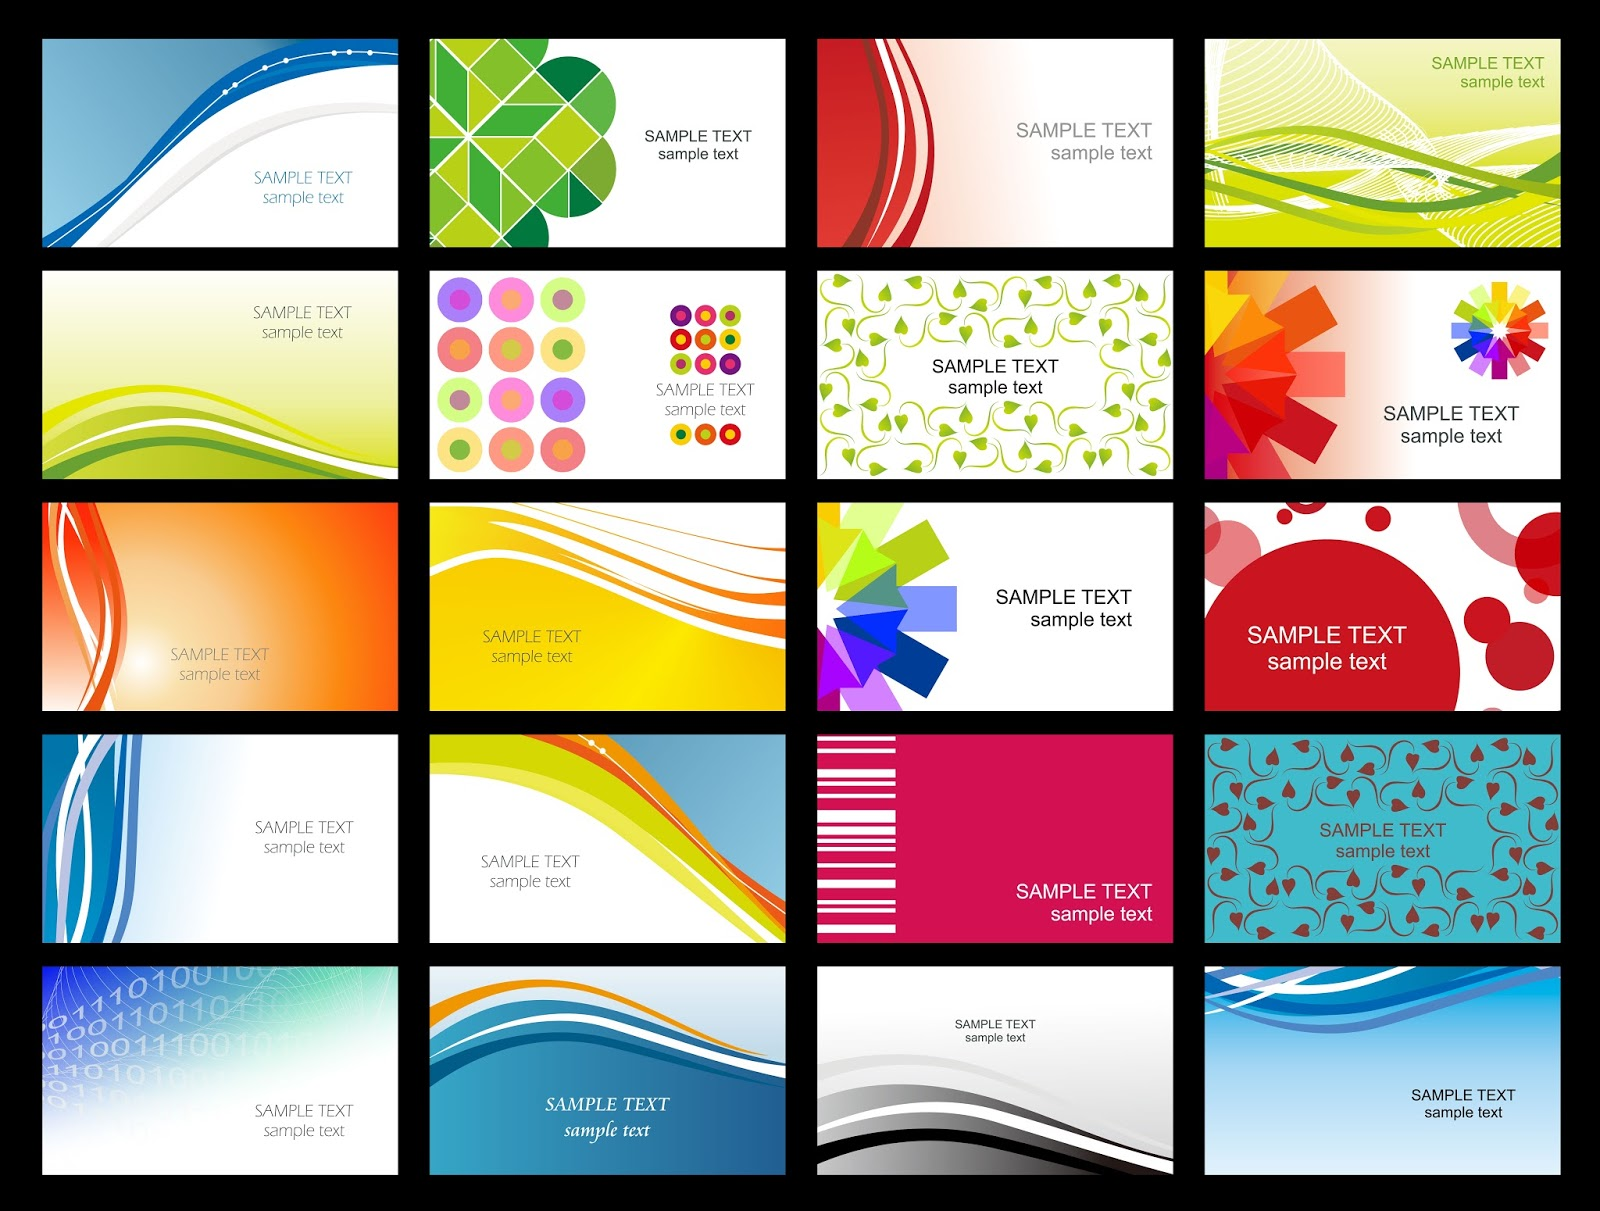 Word Busines Card Template Free Printable Idea  Microsoft 2007 Double Sided Download BlankFull